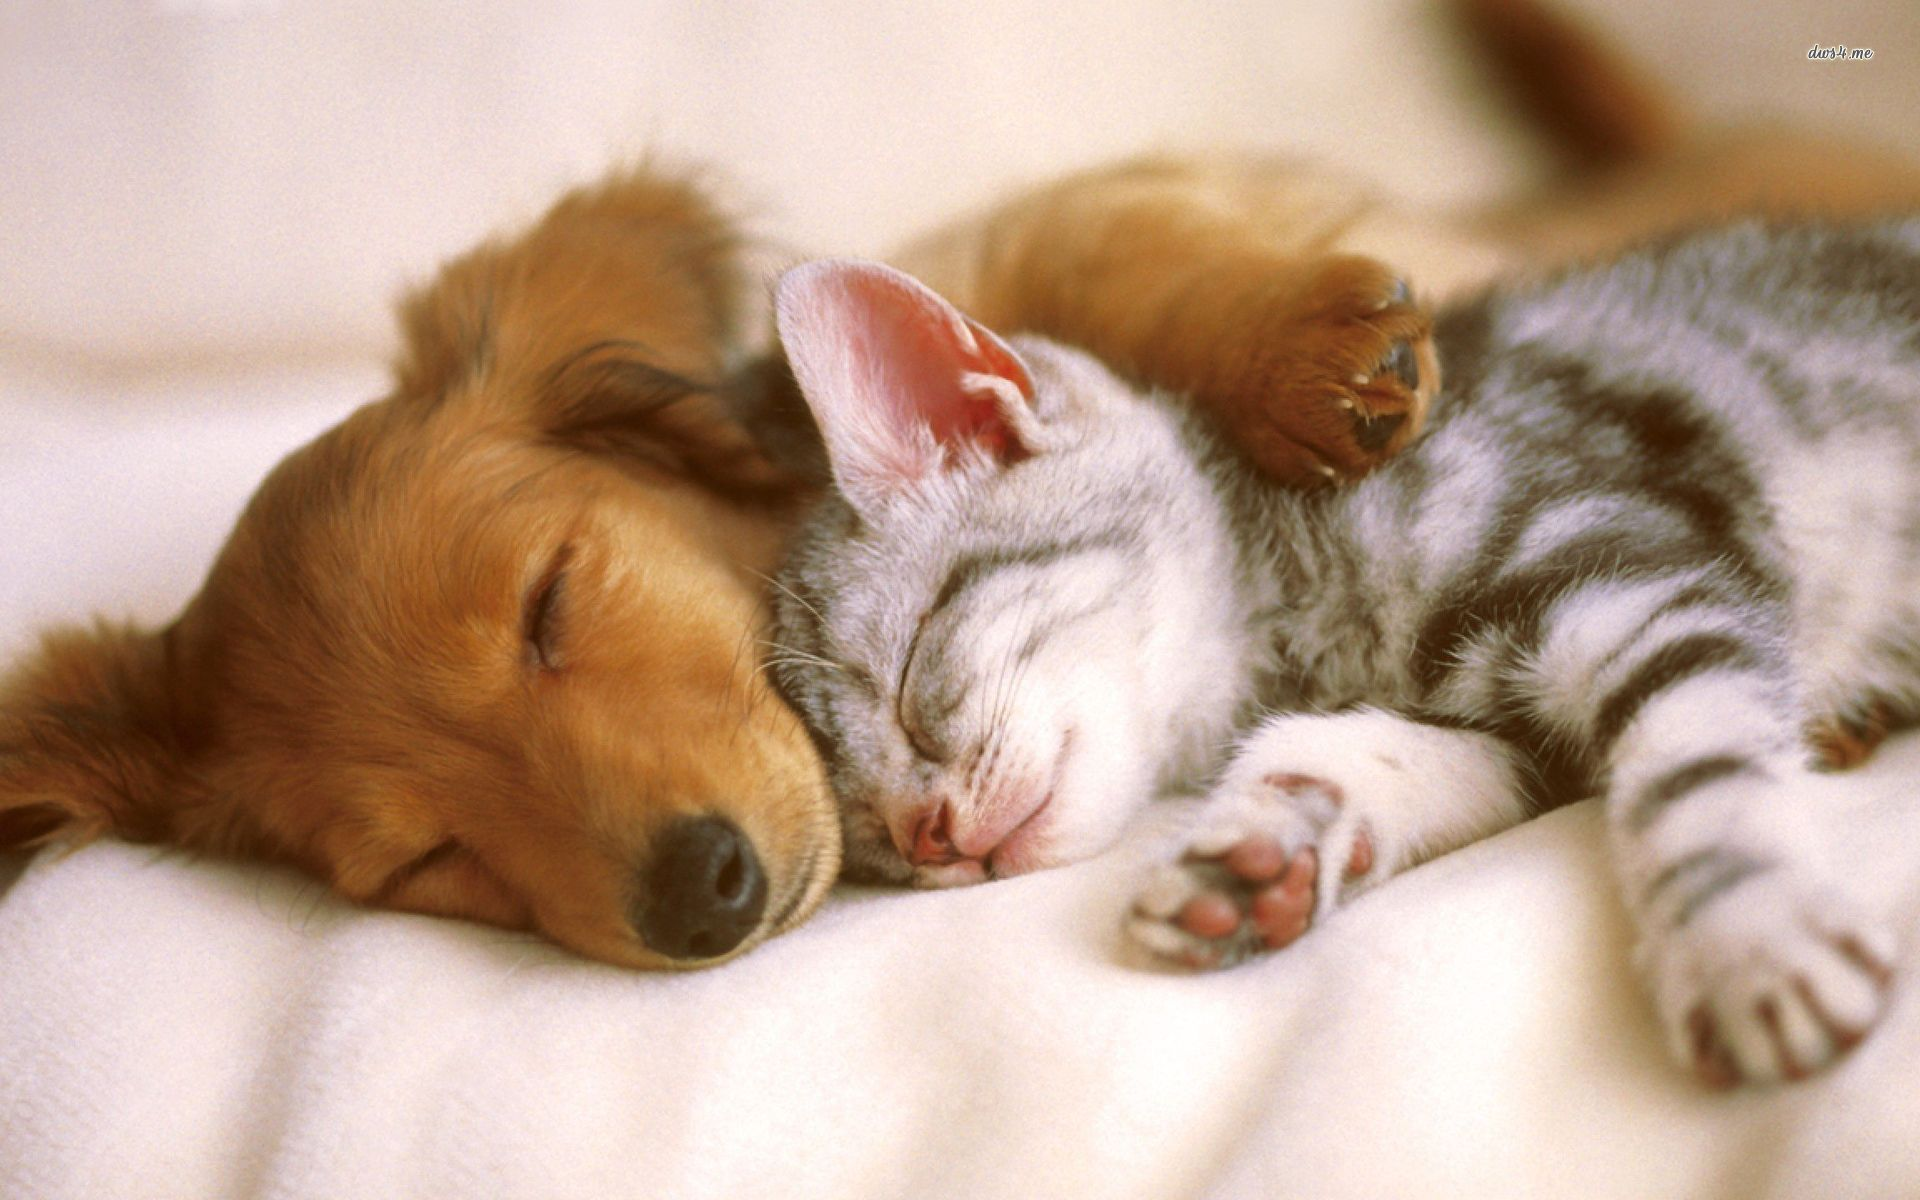 1920x1200 - Cute Puppy and Kitten 25